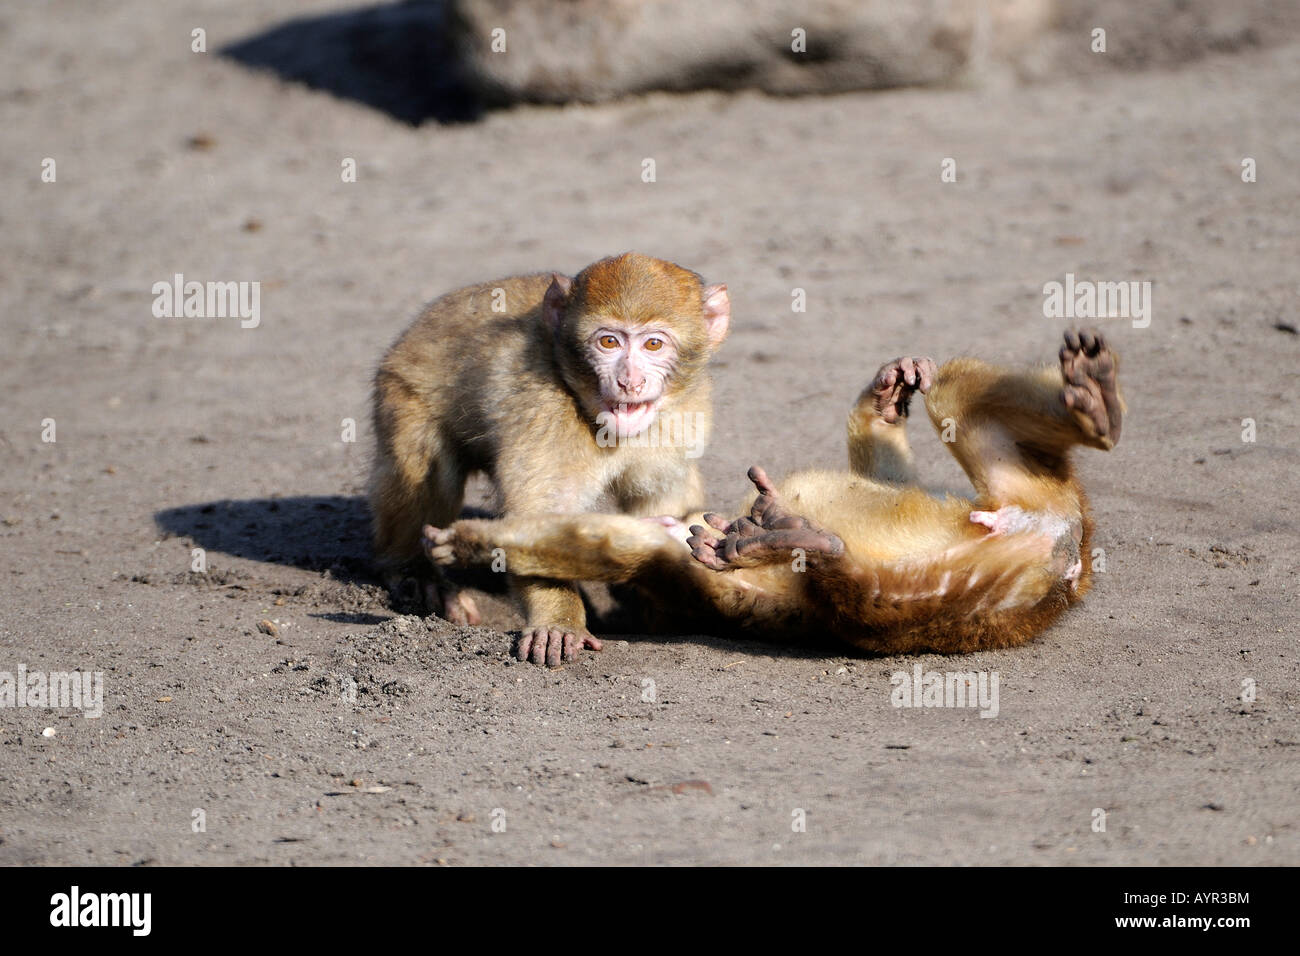 Young Barbary Macaques (Macaca sylvanus) playing, Morocco, North Africa - Stock Image